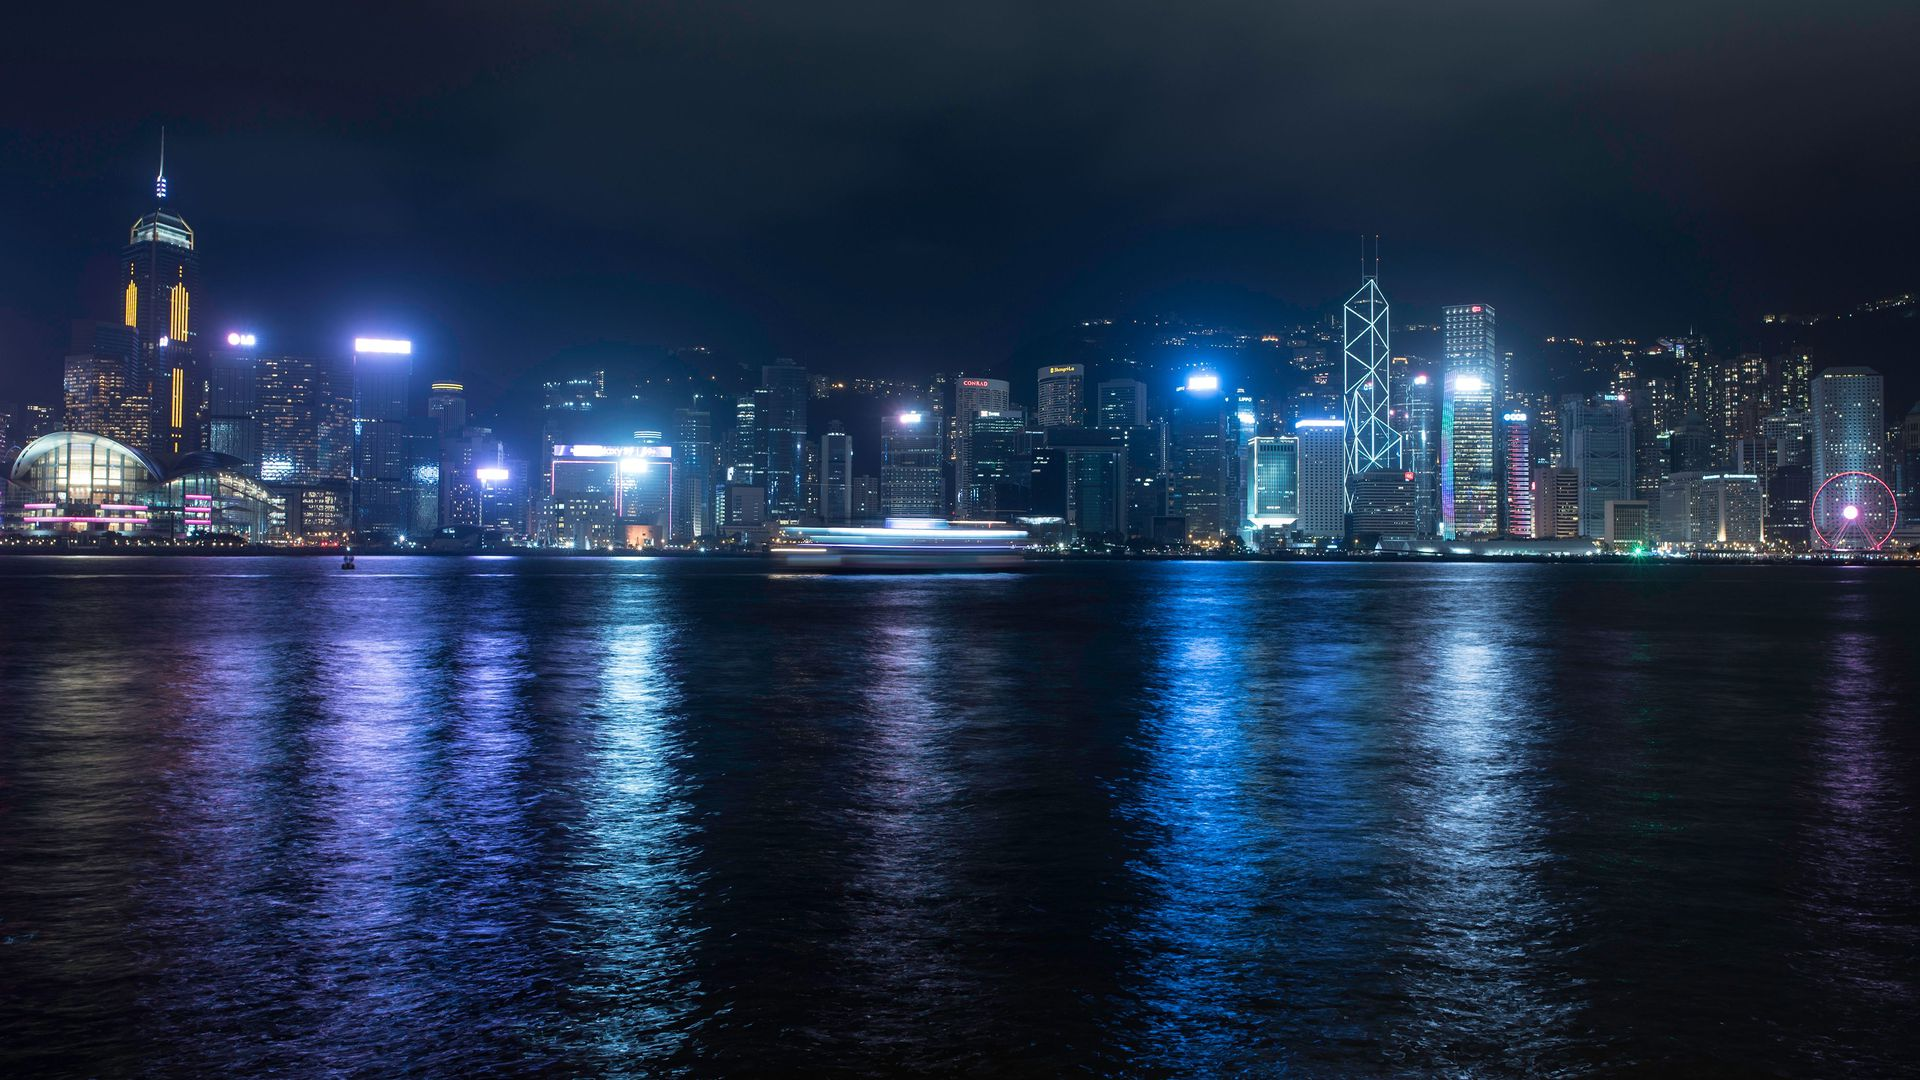 Hong Kong skyline in the dark with all the lights on. Everything has a neon blue hue in the darkness.